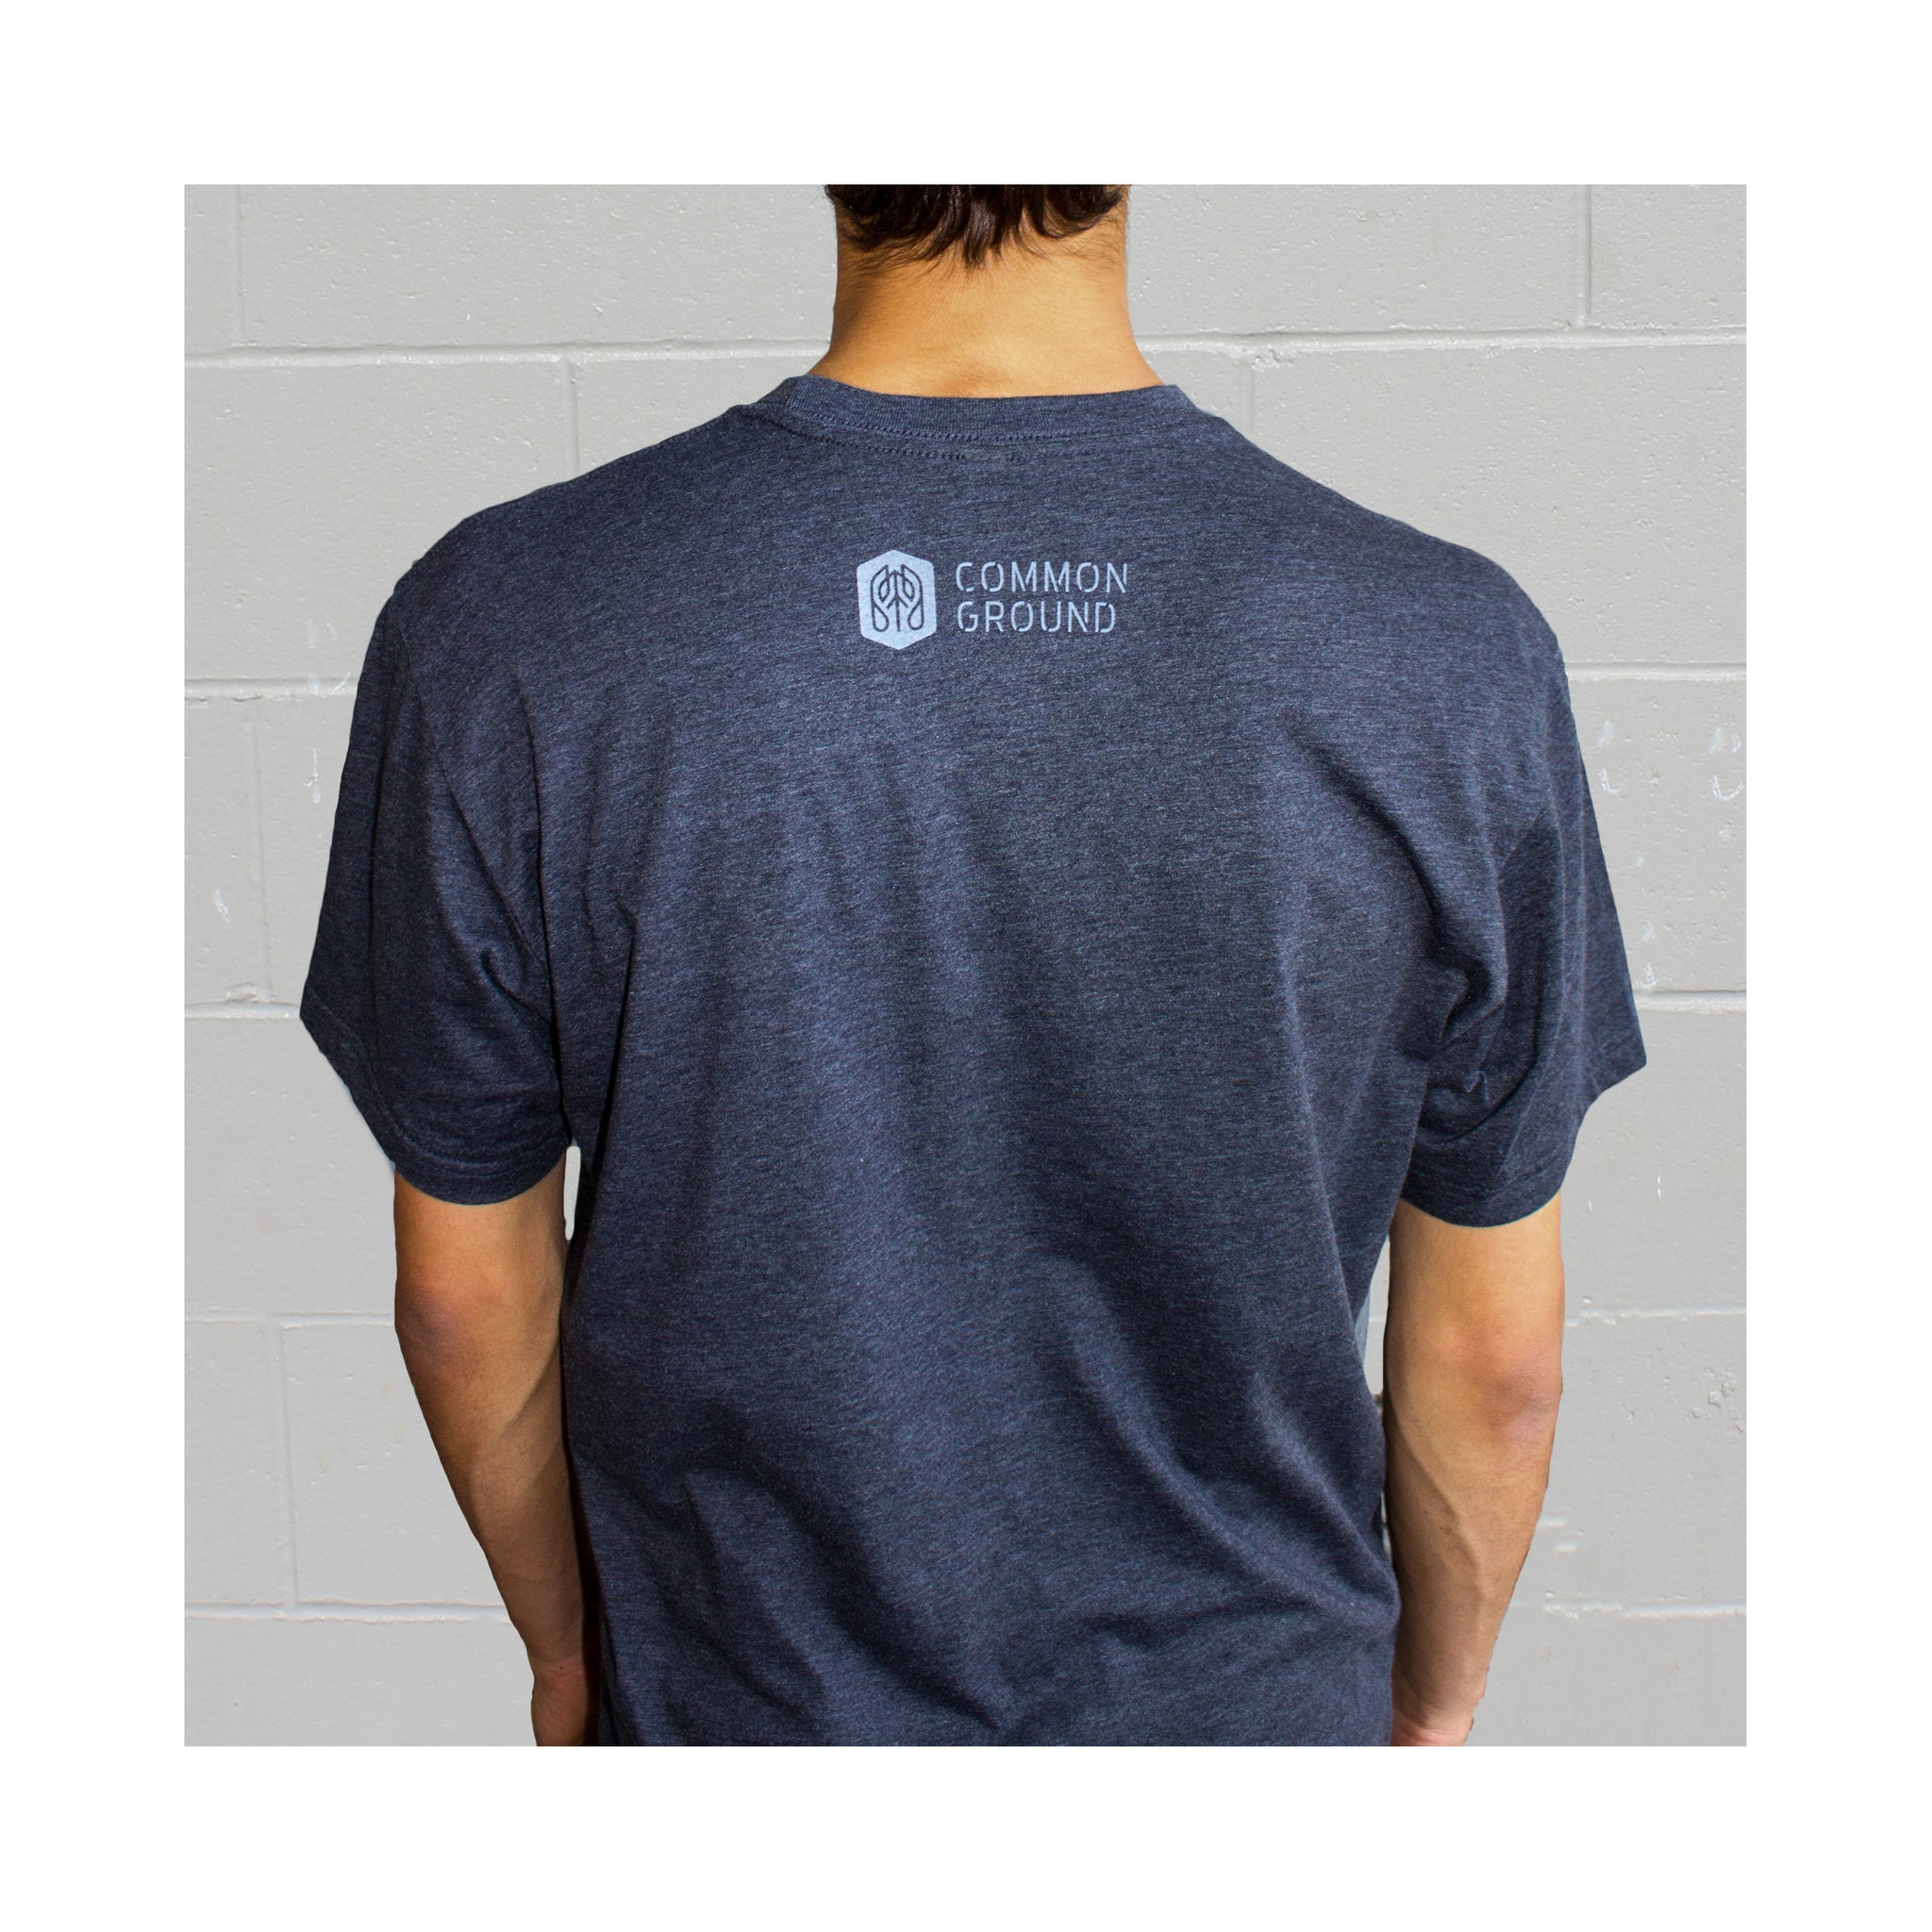 Charcoal - Stand For Progress T shirt Back on Model